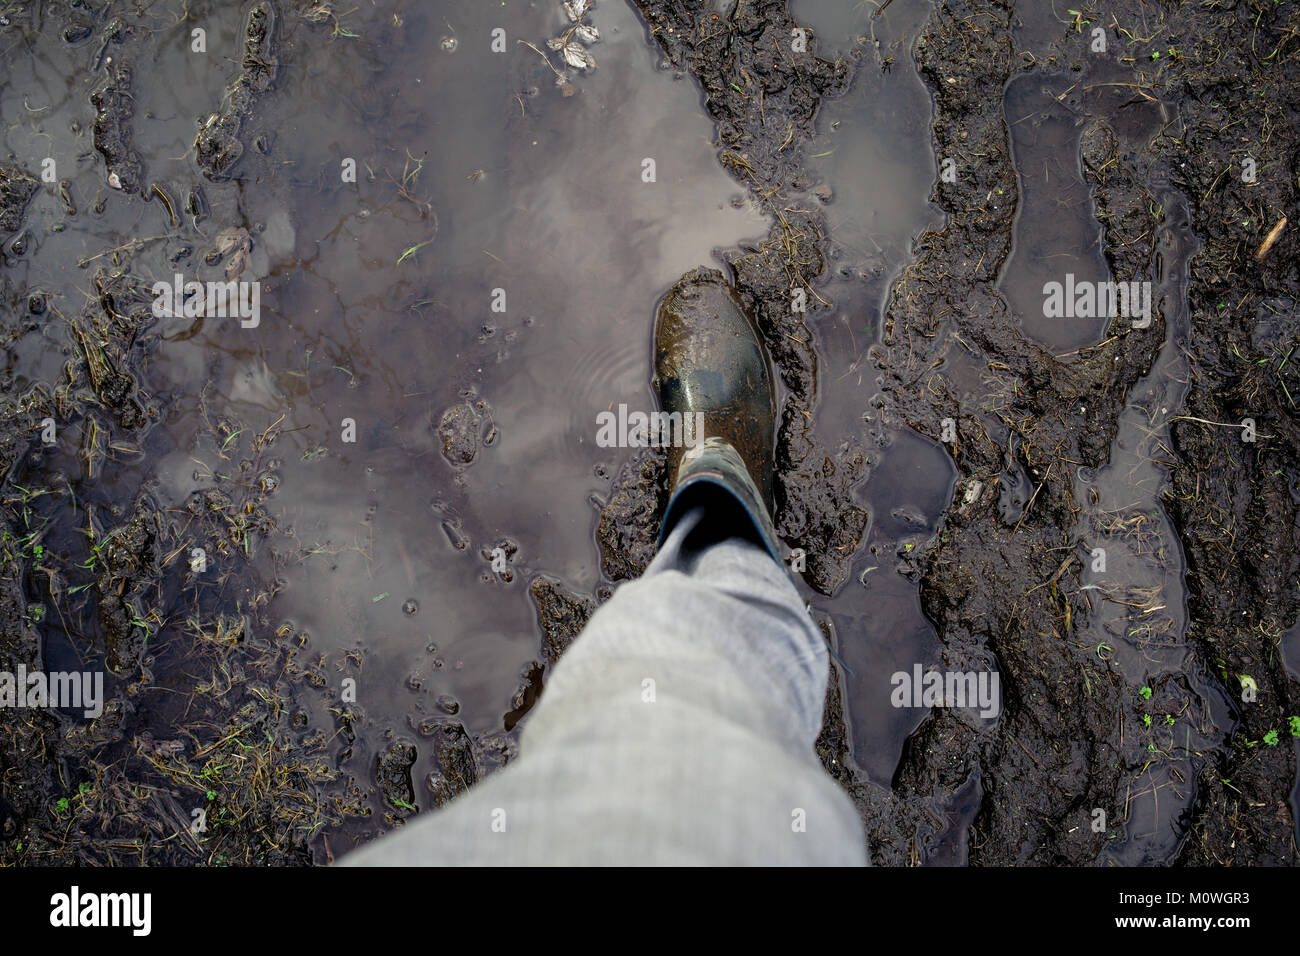 A welly boot on a muddy waterlogged path. With sky reflected in water puddle. Stock Photo